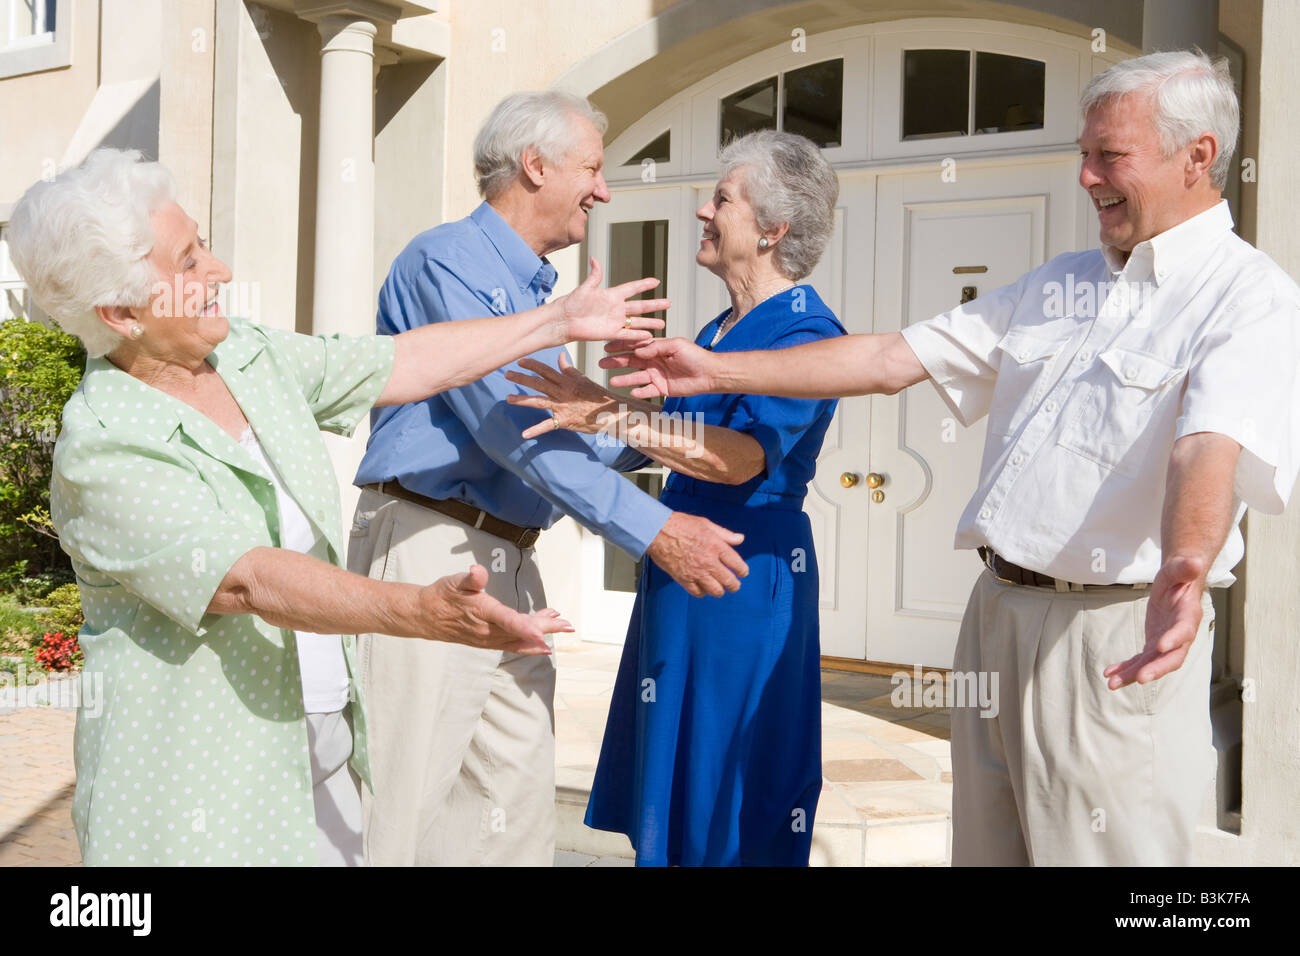 Two senior couples greeting each other with open arms Stock Photo